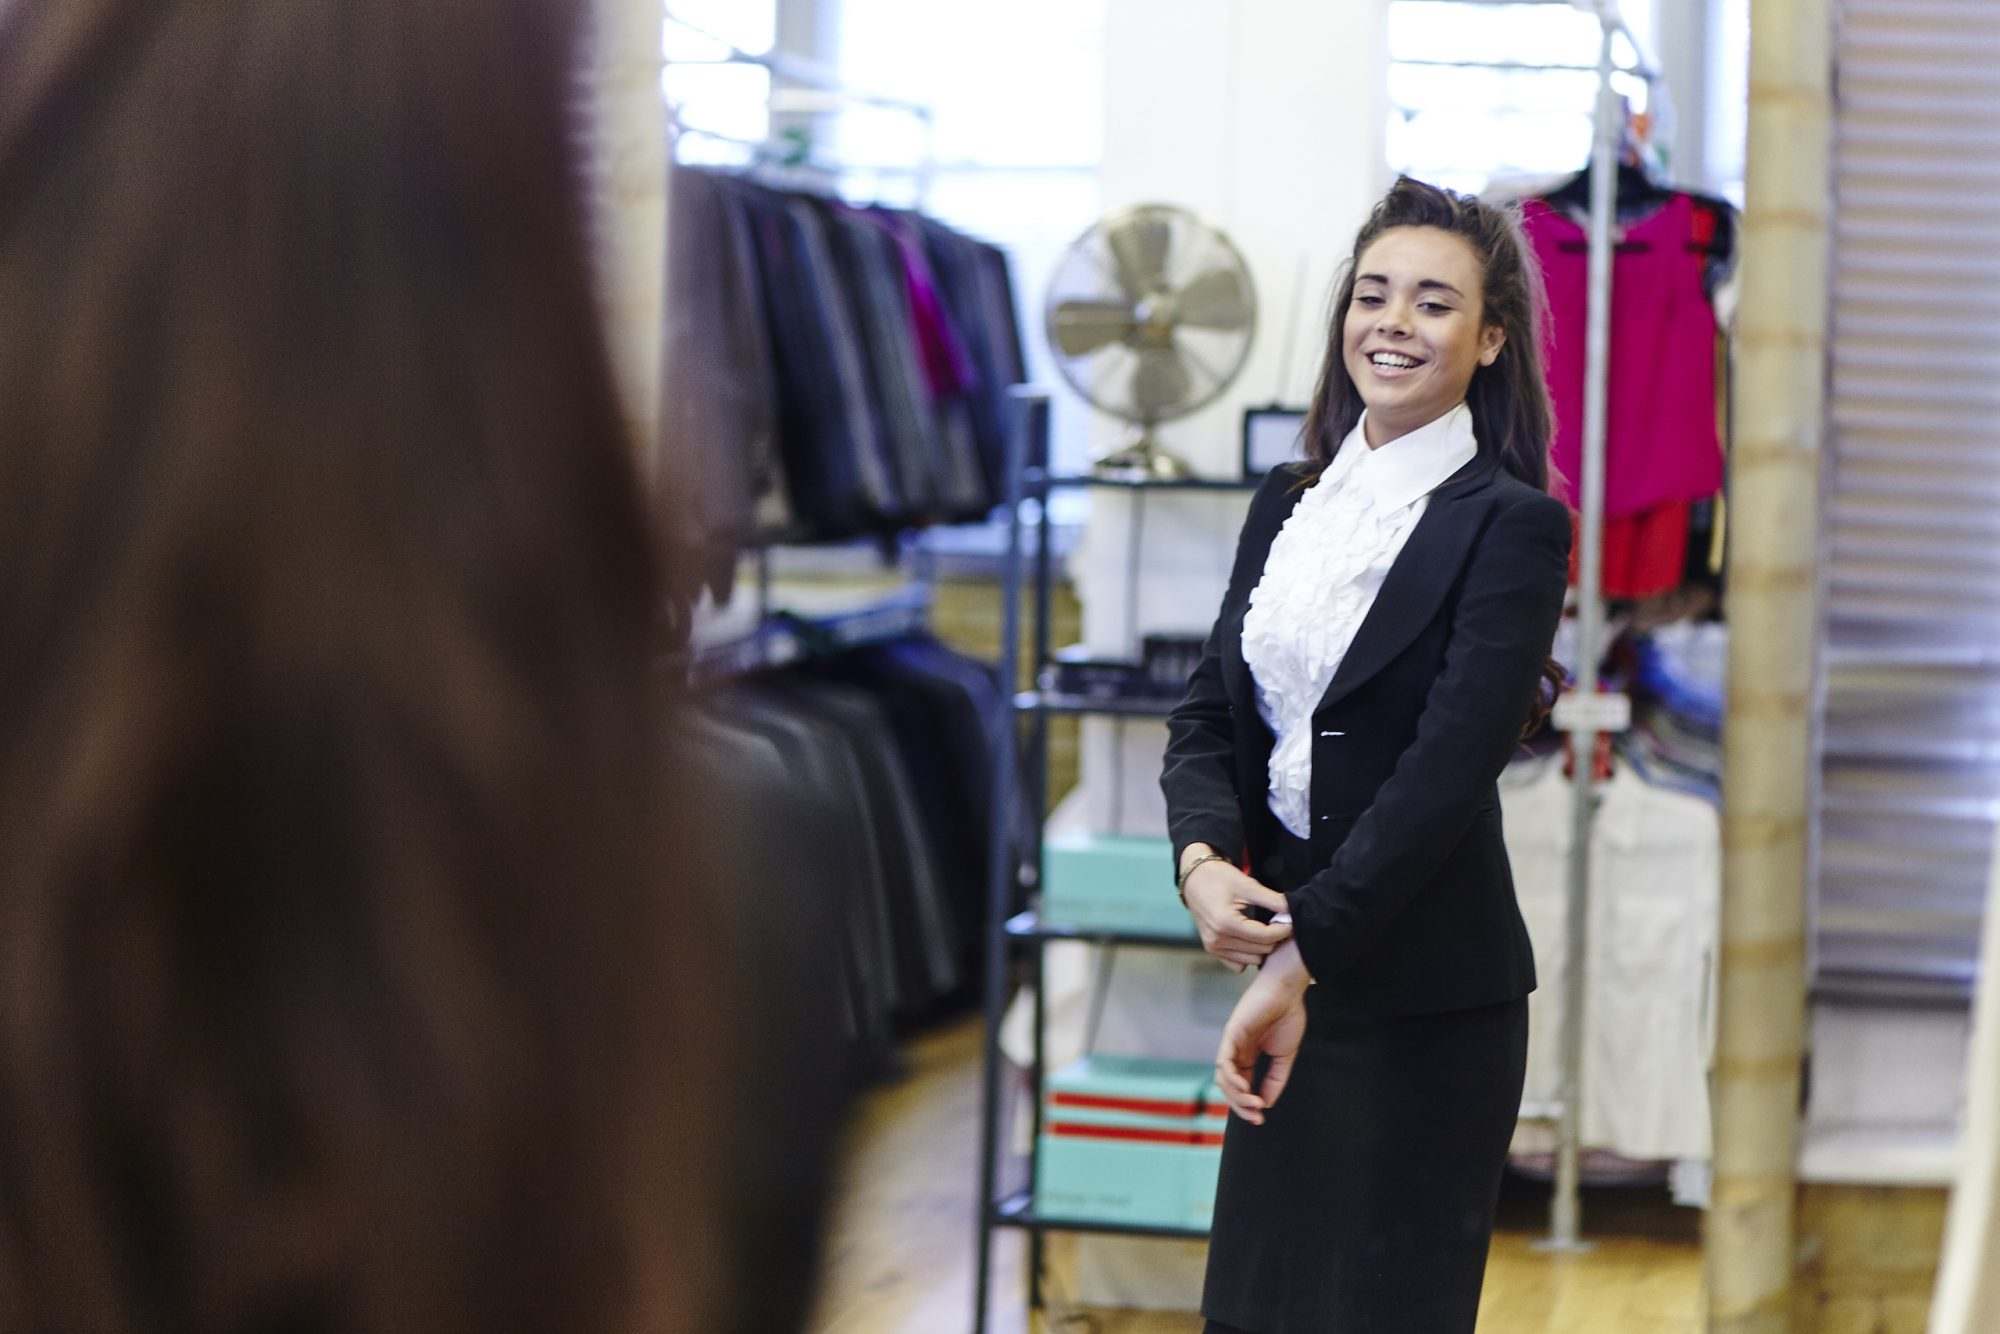 Smart Works Provide Interview Clothes And Coaching Skills For Women